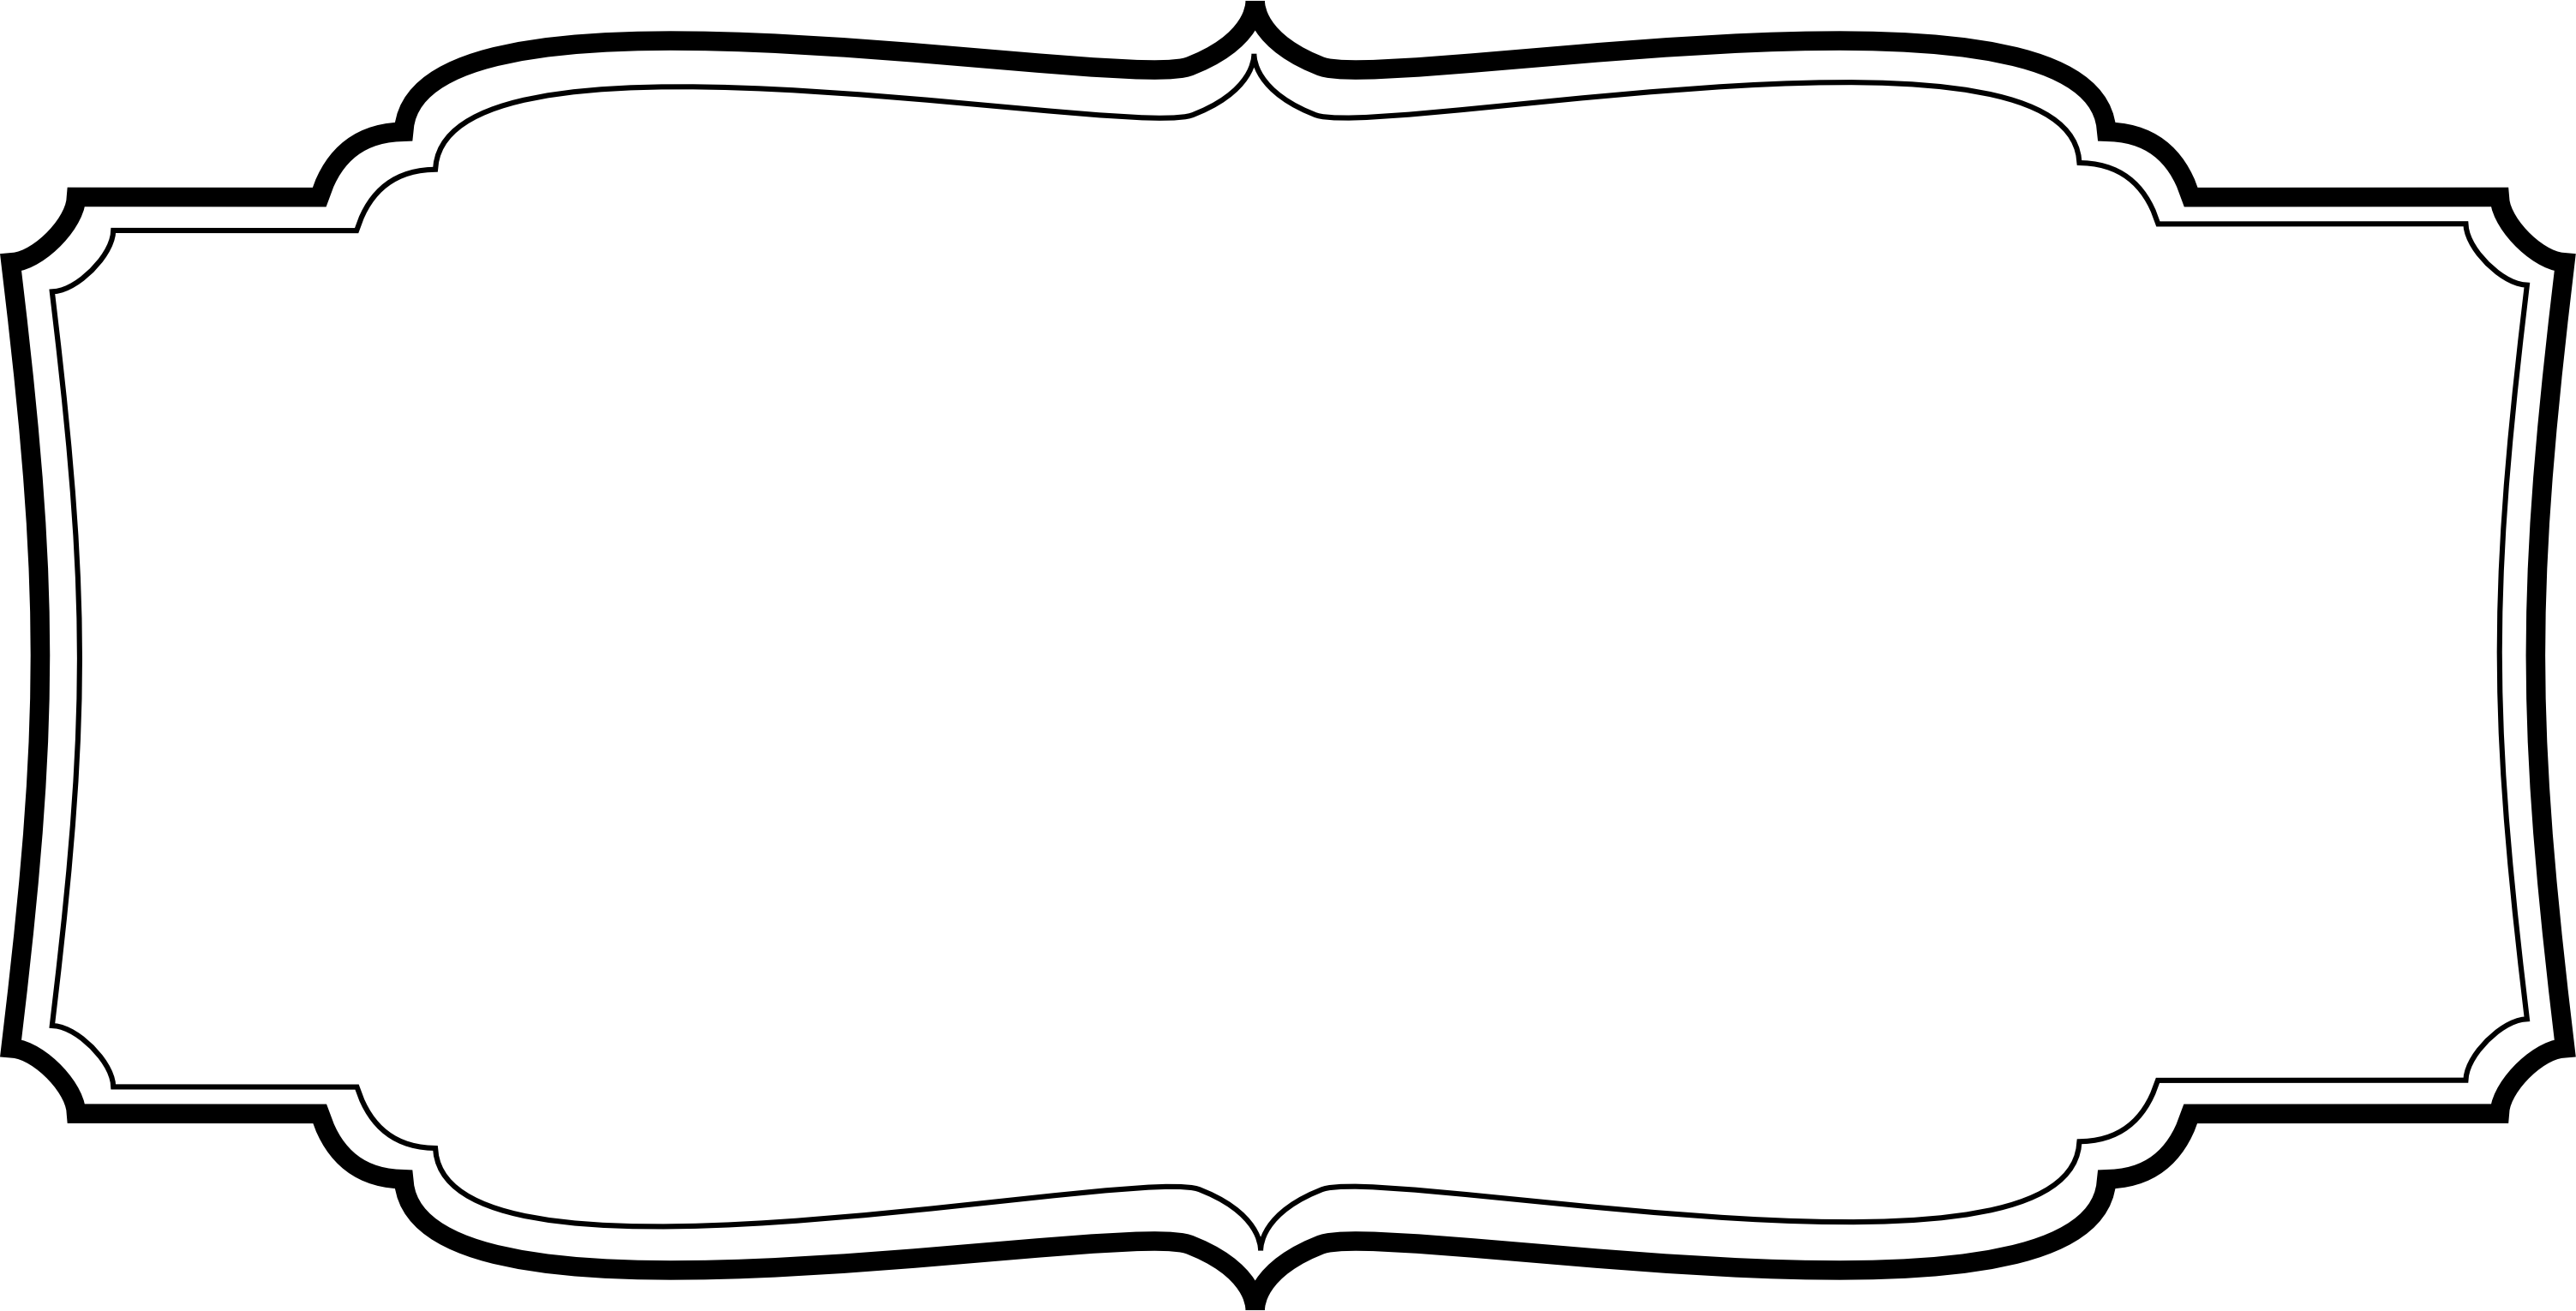 Label frame png. Images of spacehero vintage